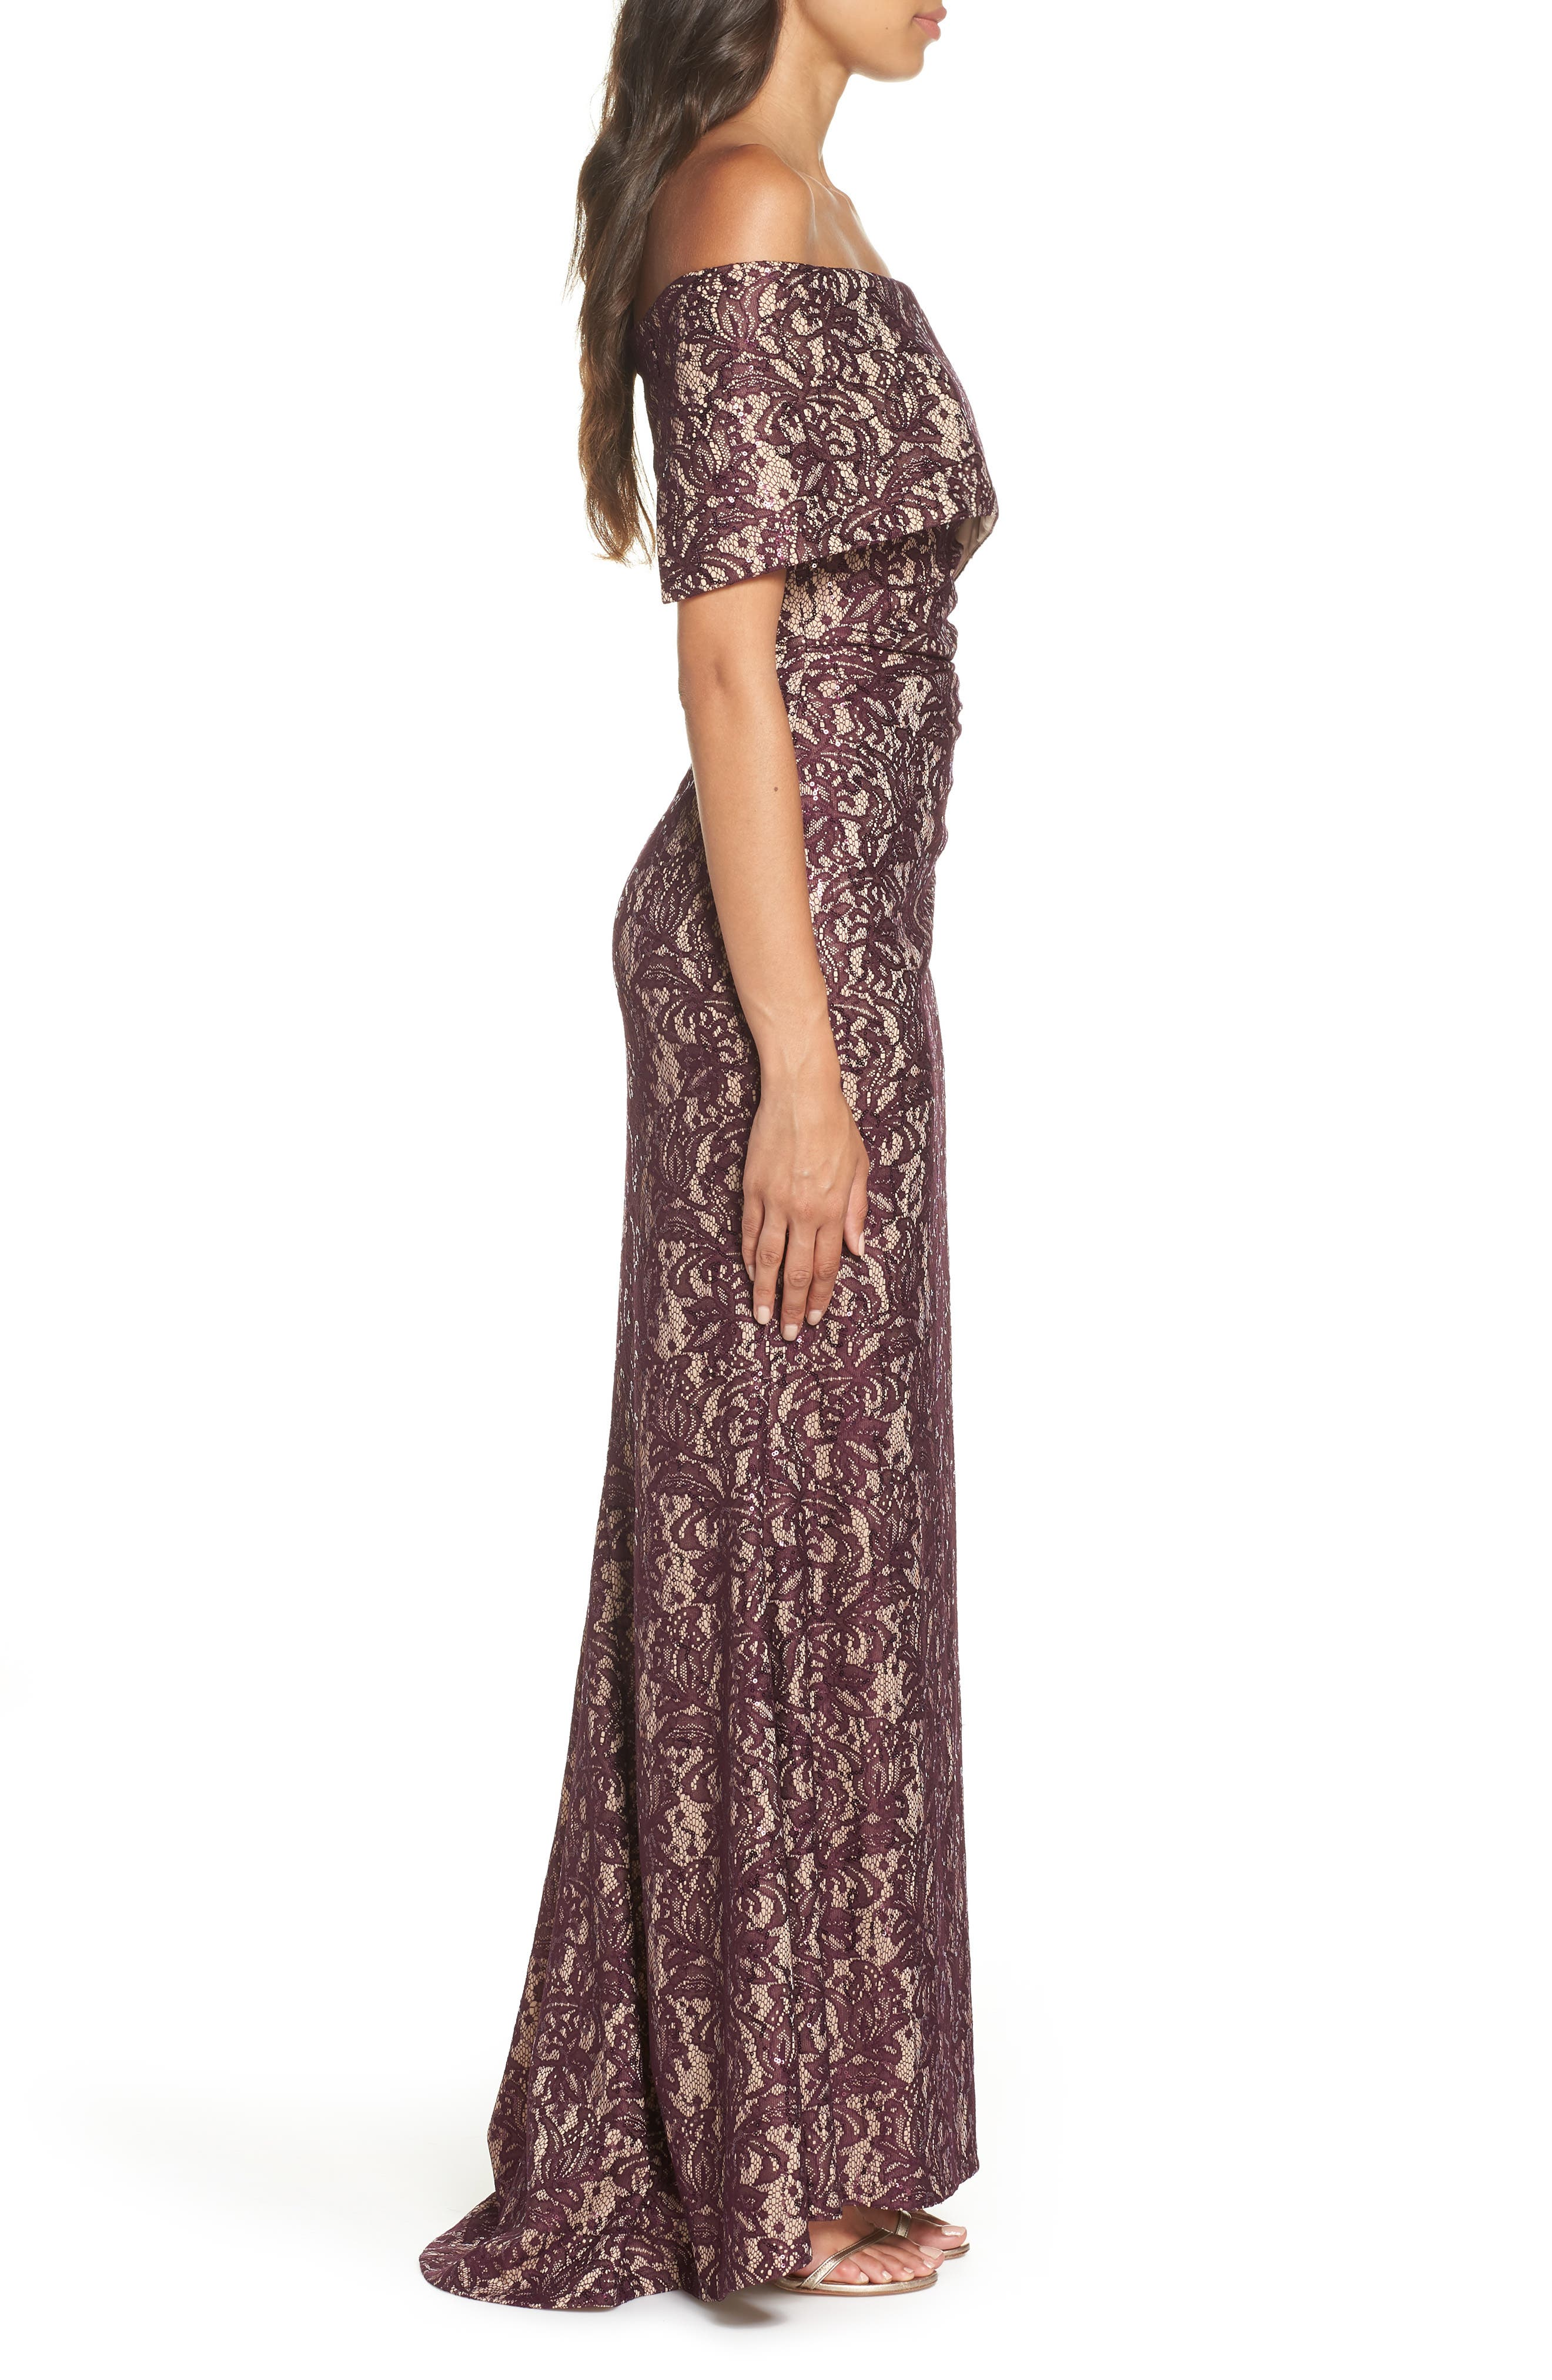 VINCE CAMUTO, Sequin Off the Shoulder Gown, Alternate thumbnail 4, color, WINE